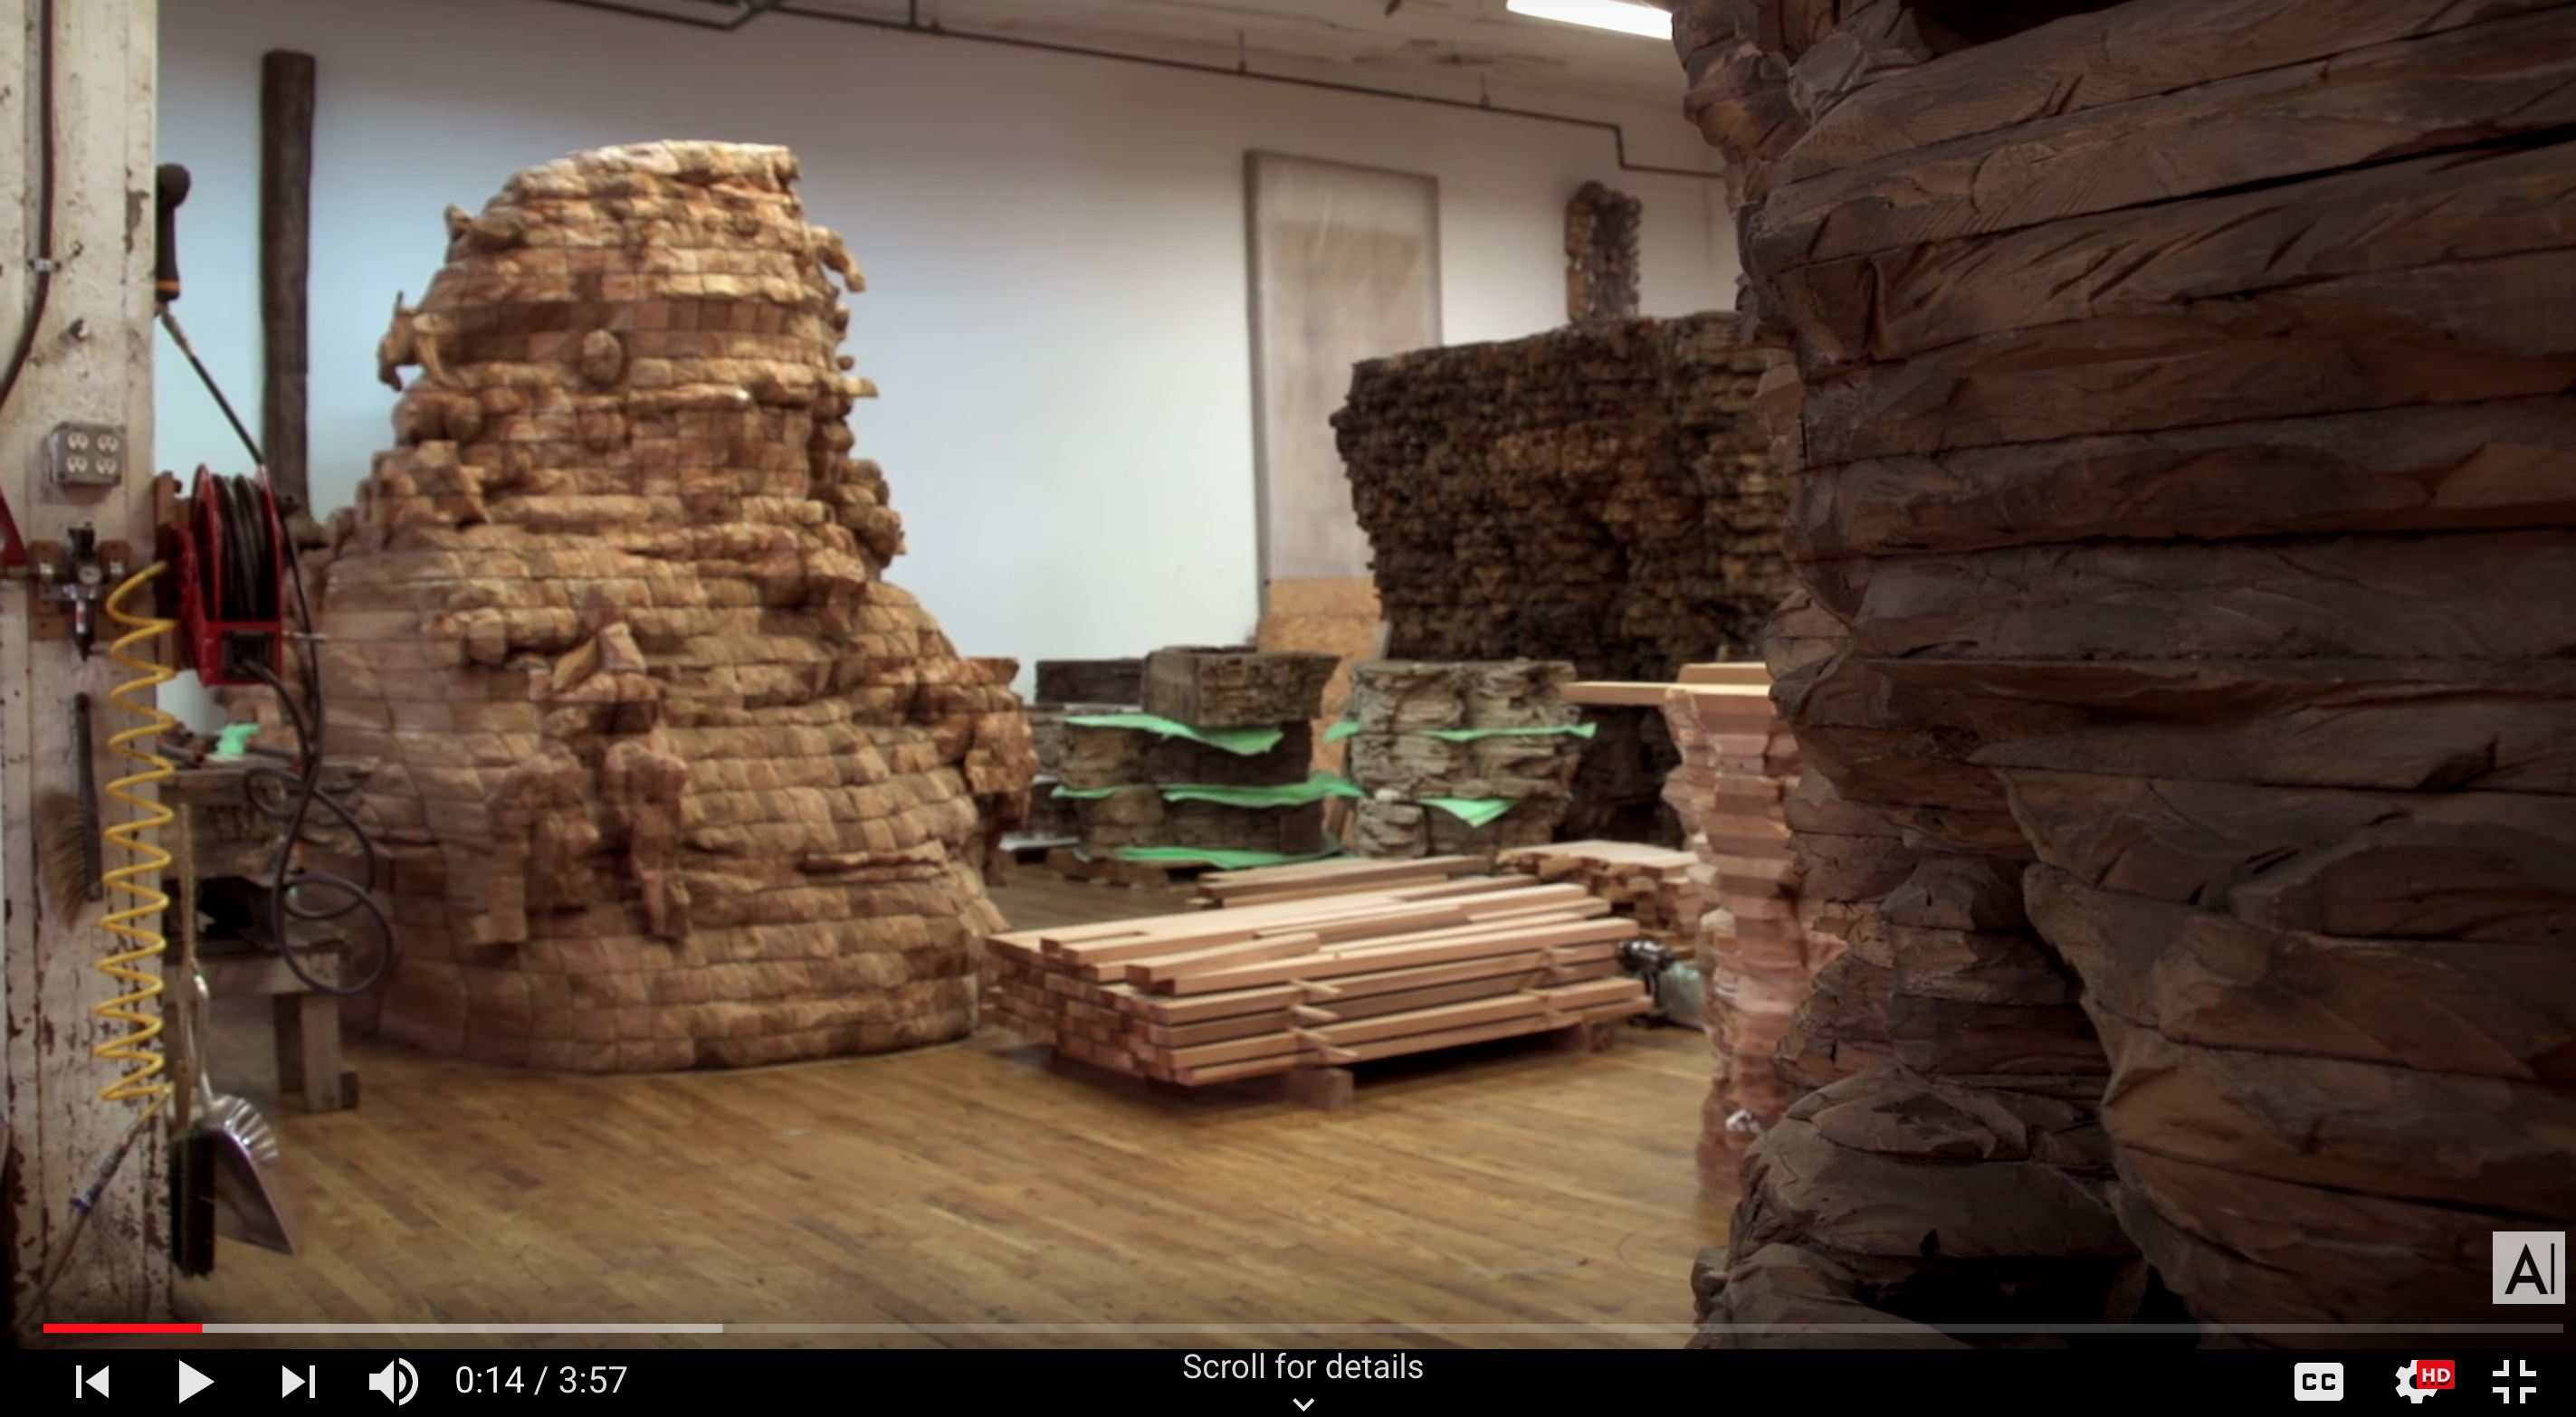 Still image from video about Ursula von Rydingsvard shows a large room with large cedar sculptures.